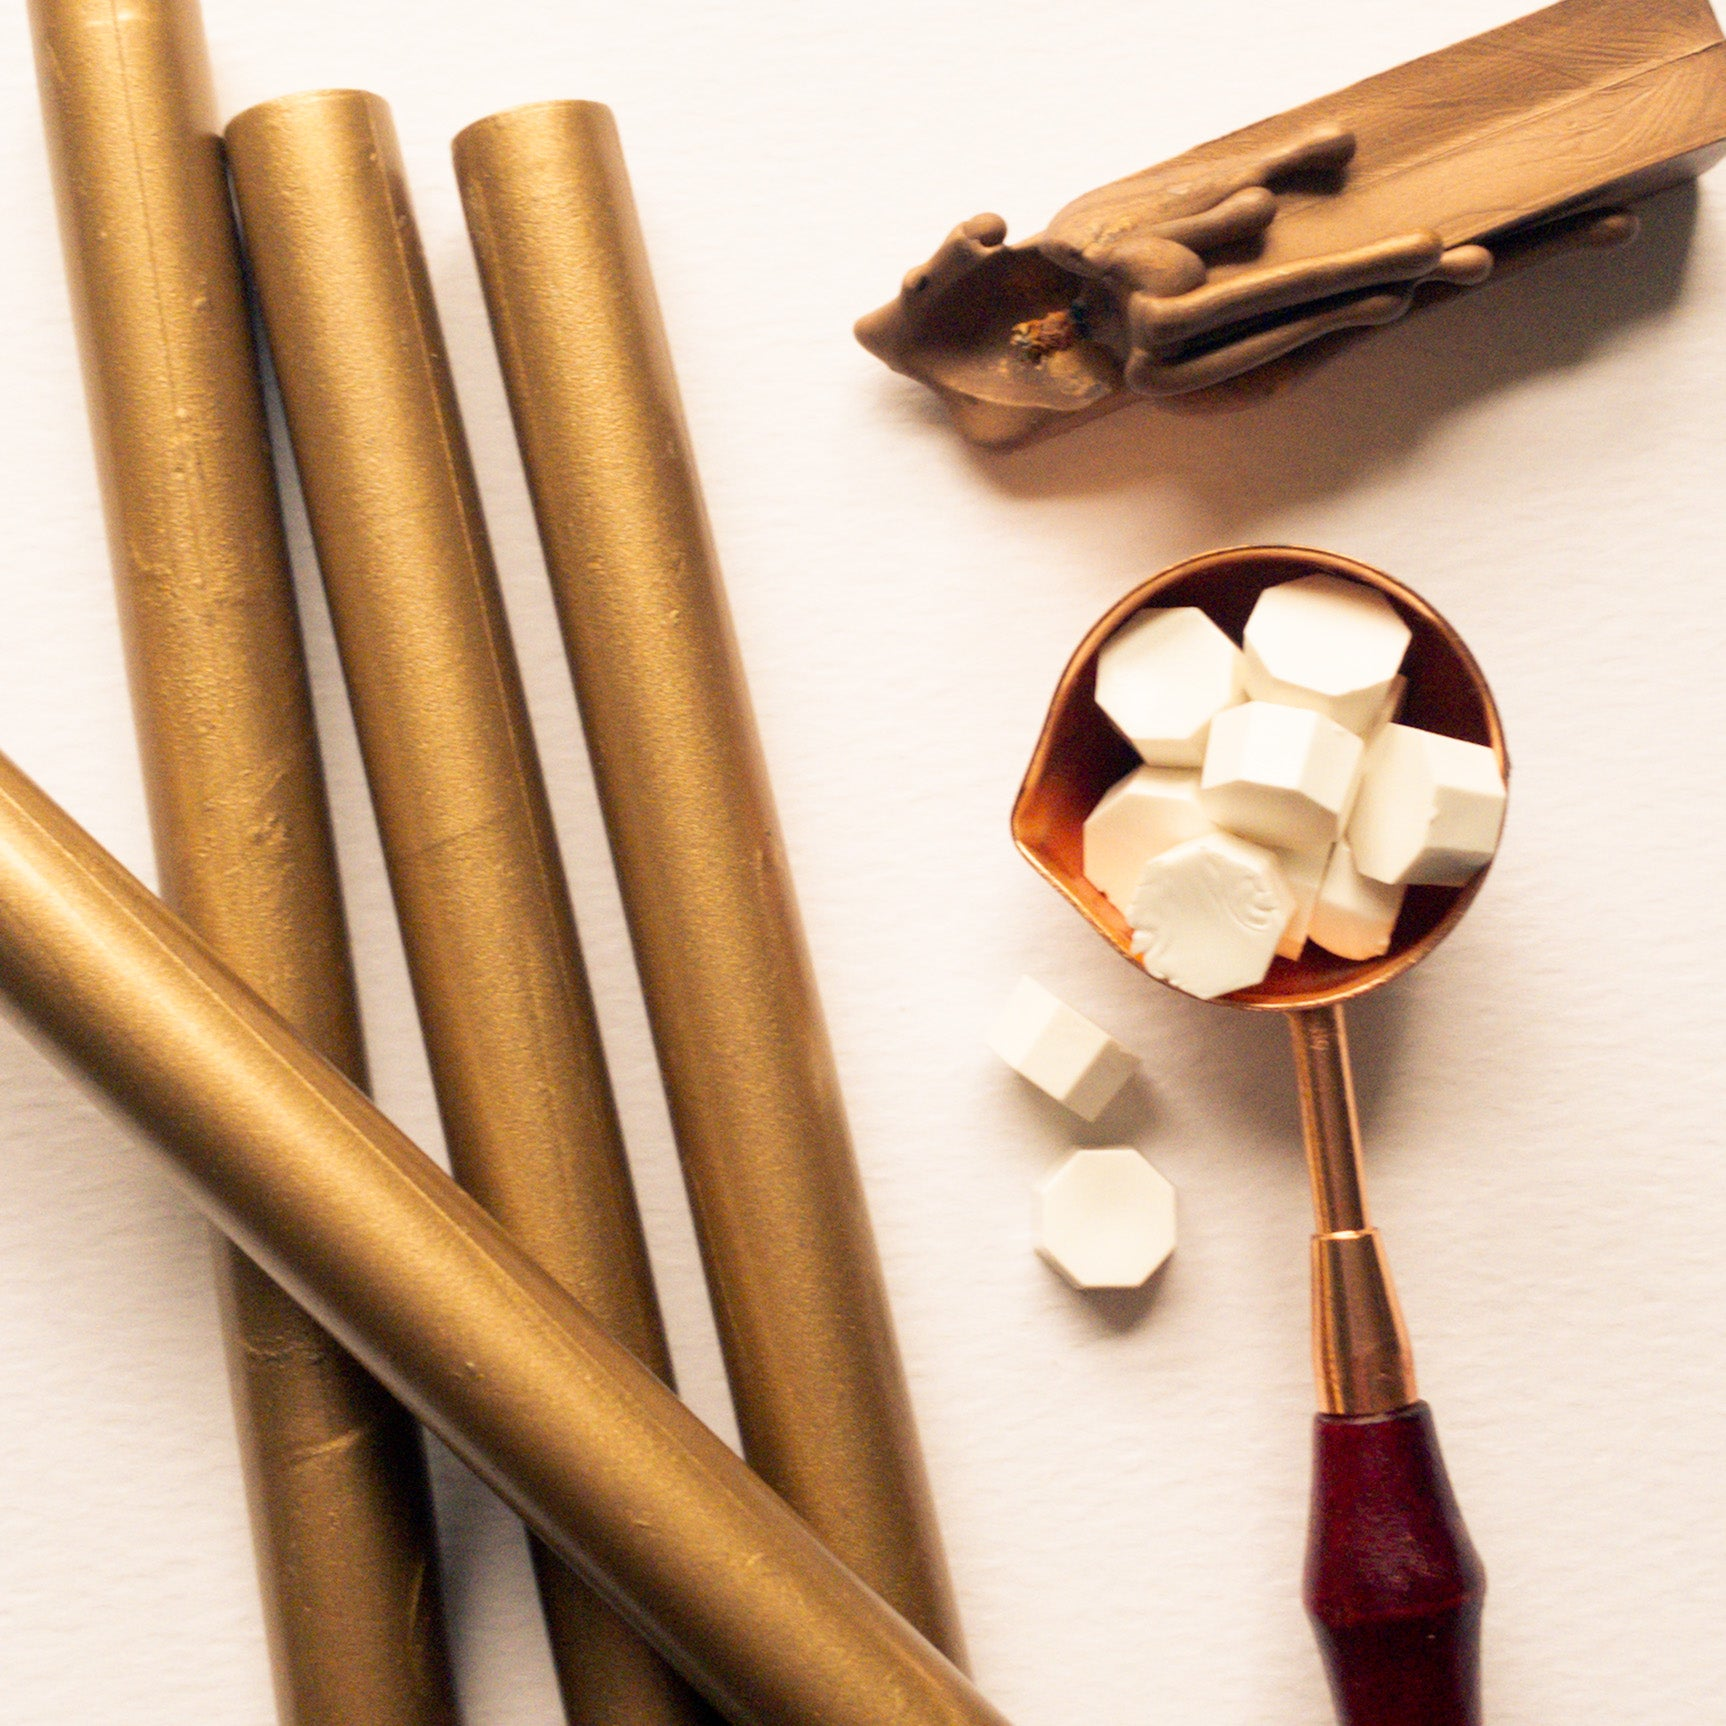 Wicks, Sticks and Beads - A Stationer's Comparison